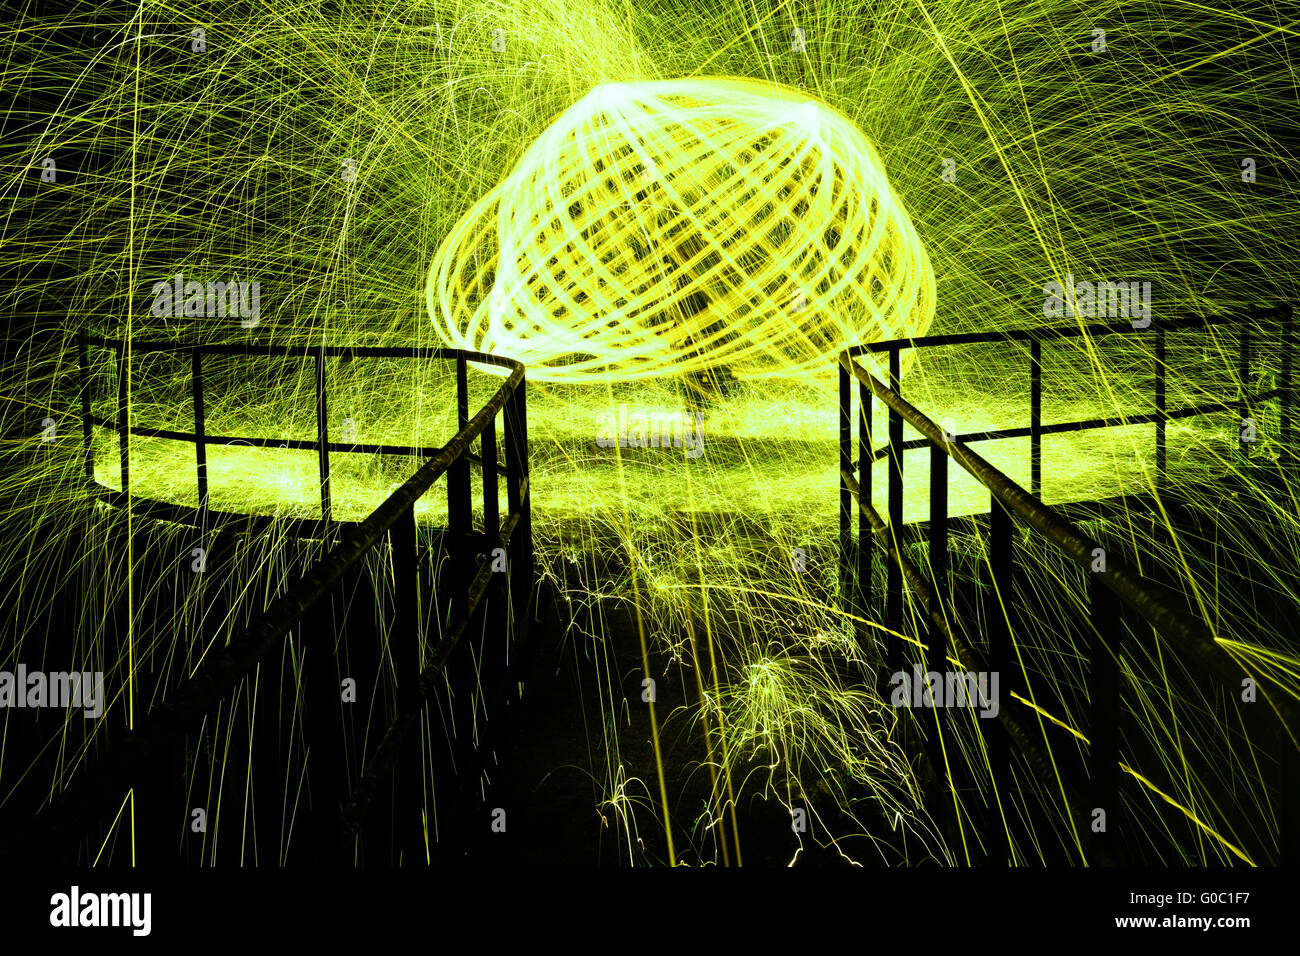 Showers of hot glowing sparks from spinning steel wool - Stock Image